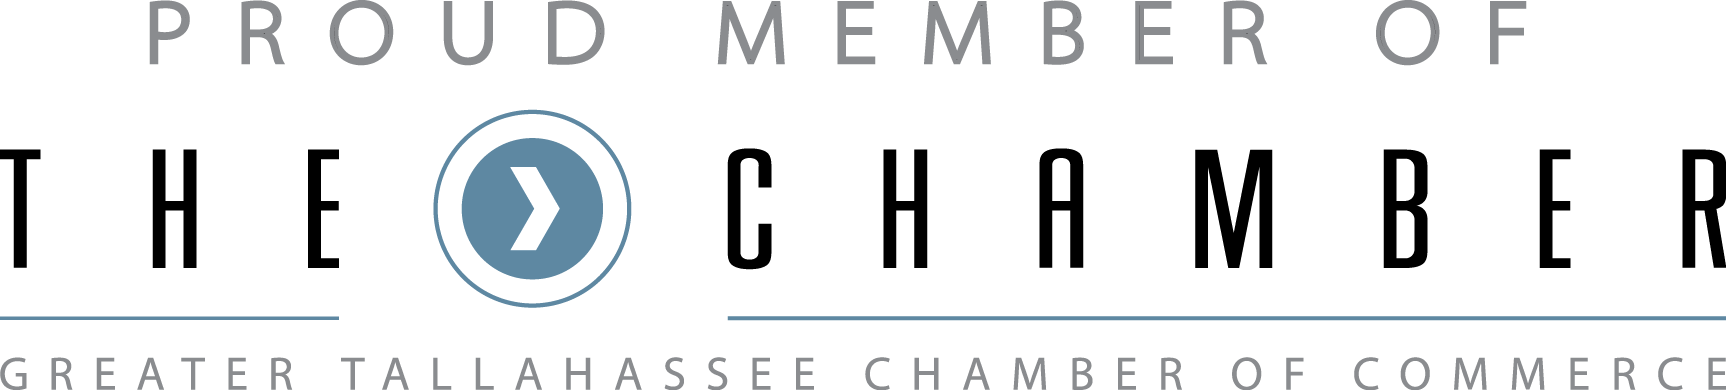 2015 Member of the Tallahassee Chamber of Commerce